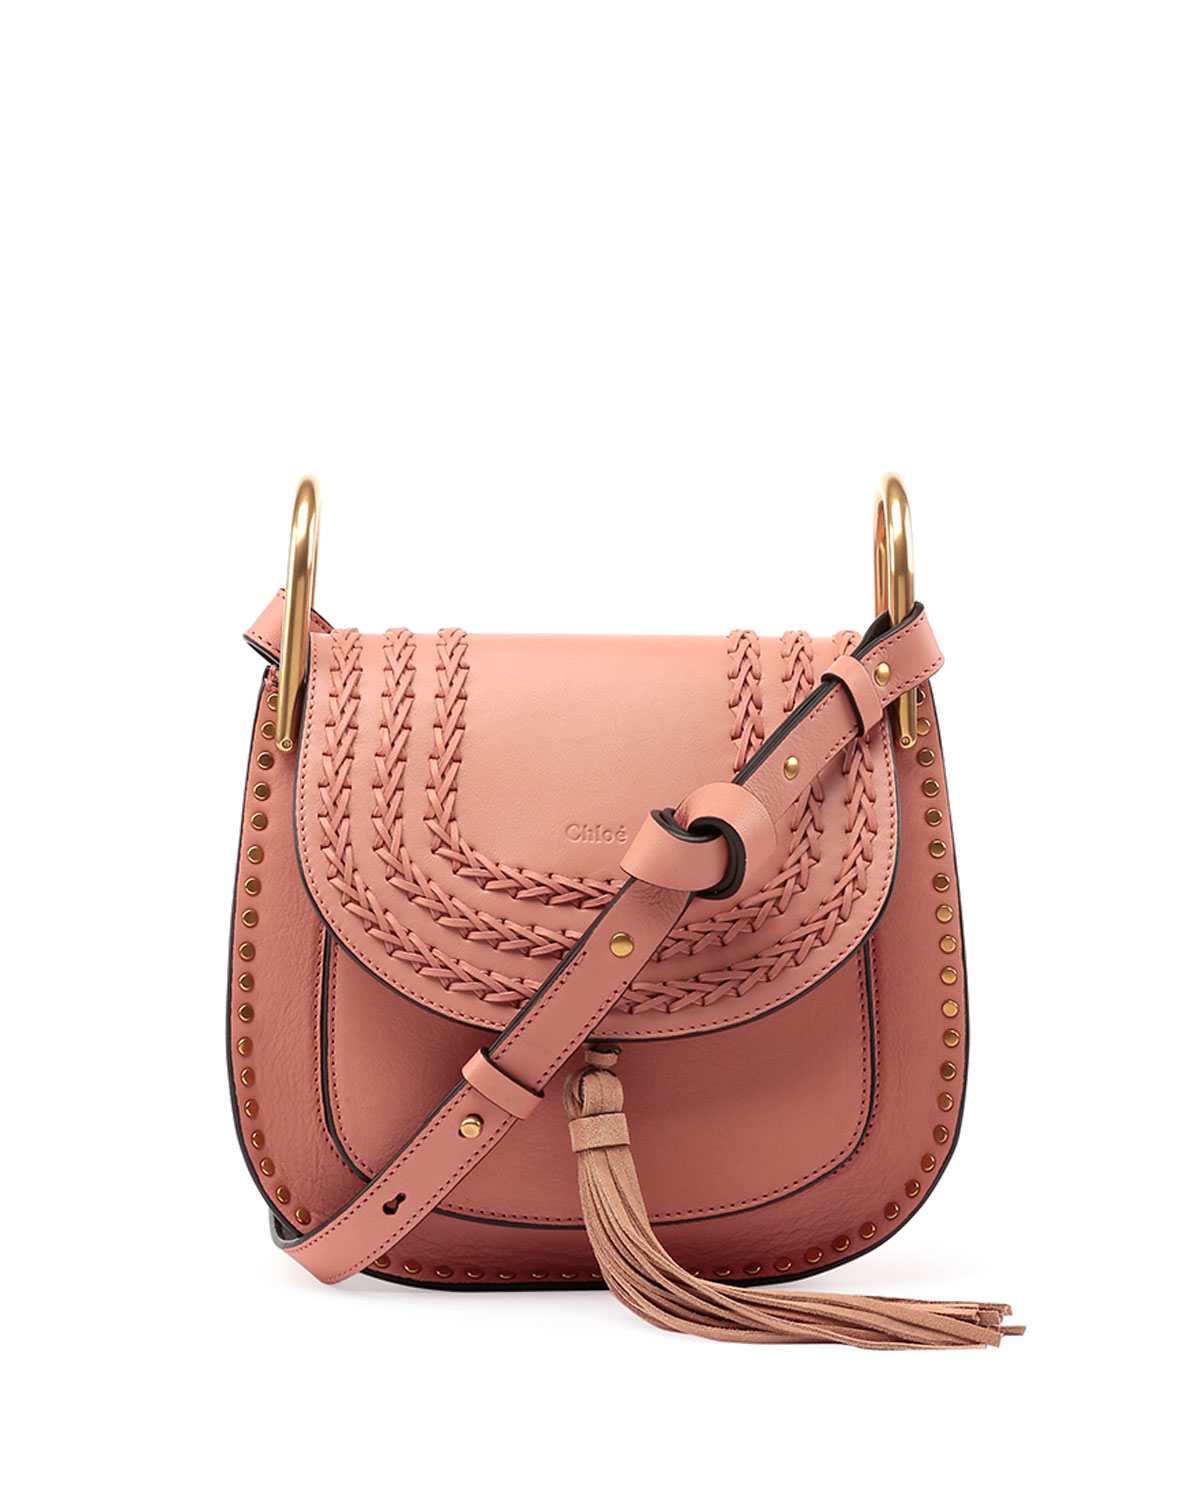 chloe it bags - Chlo�� Hudson Tassel Leather Shoulder Bag in Pink (ROSE) | Lyst